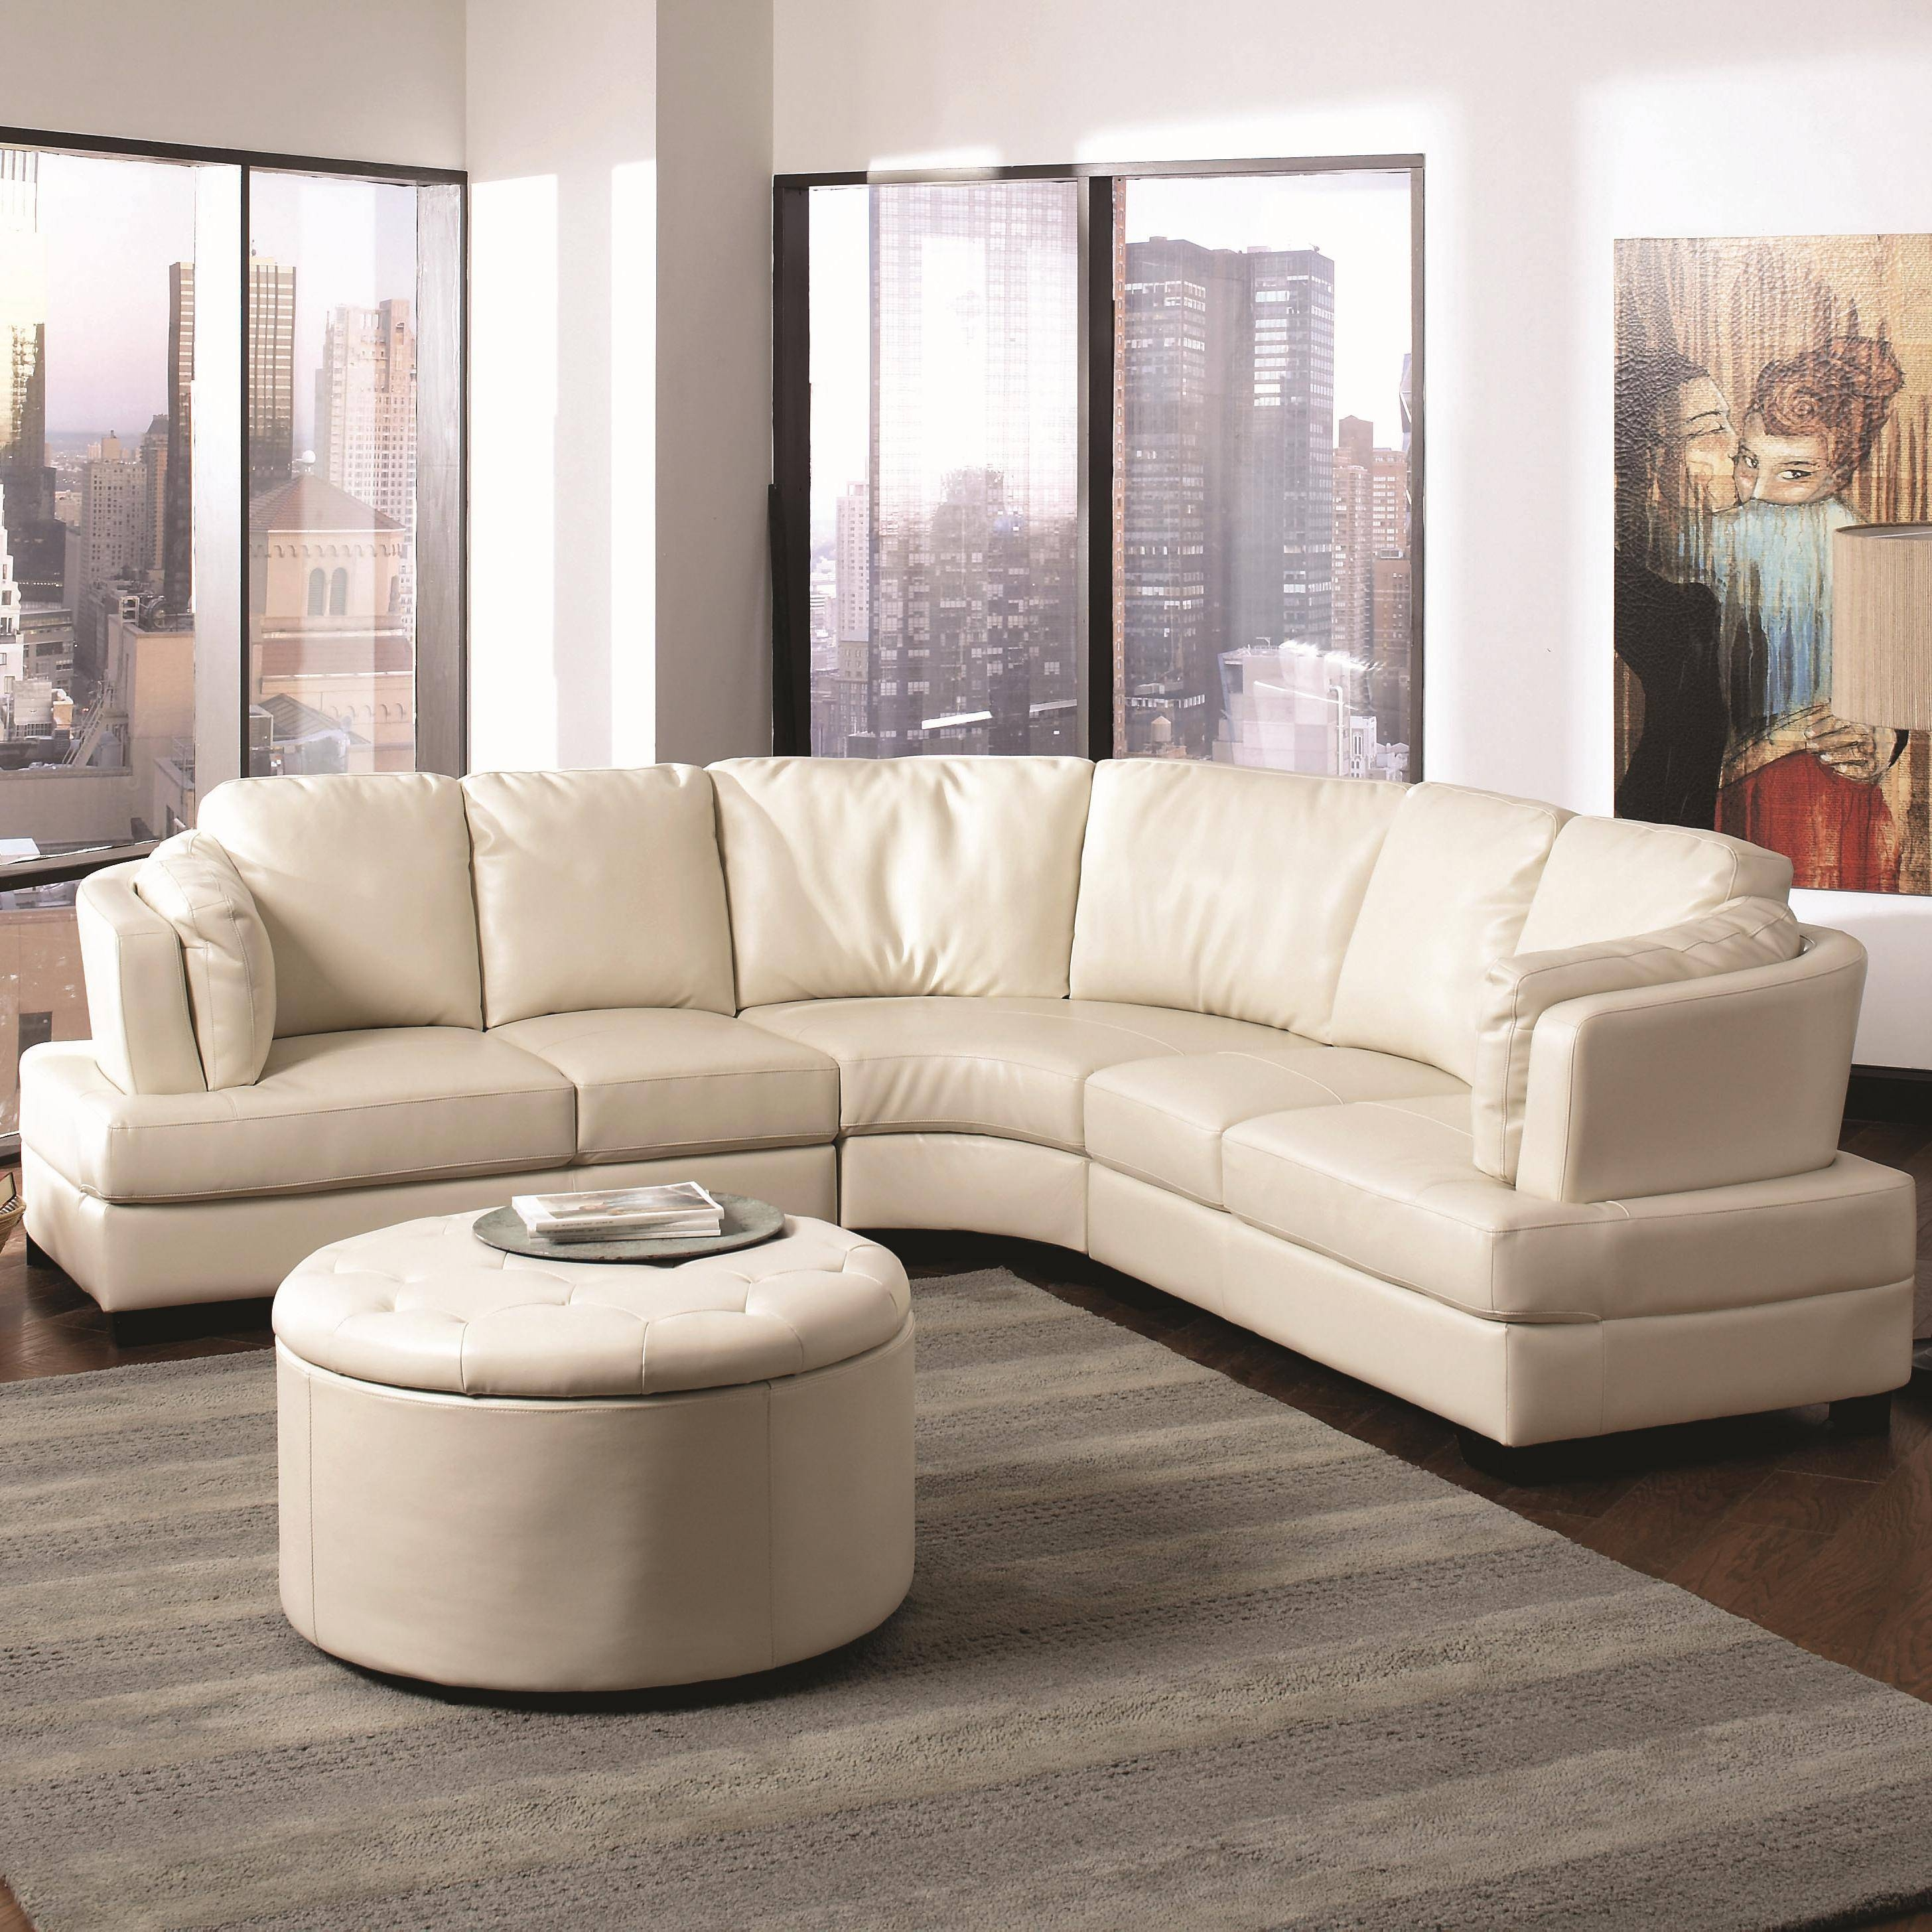 Landen Contemporary Curved Leather Sectional throughout Contemporary Curved Sofas (Image 20 of 30)